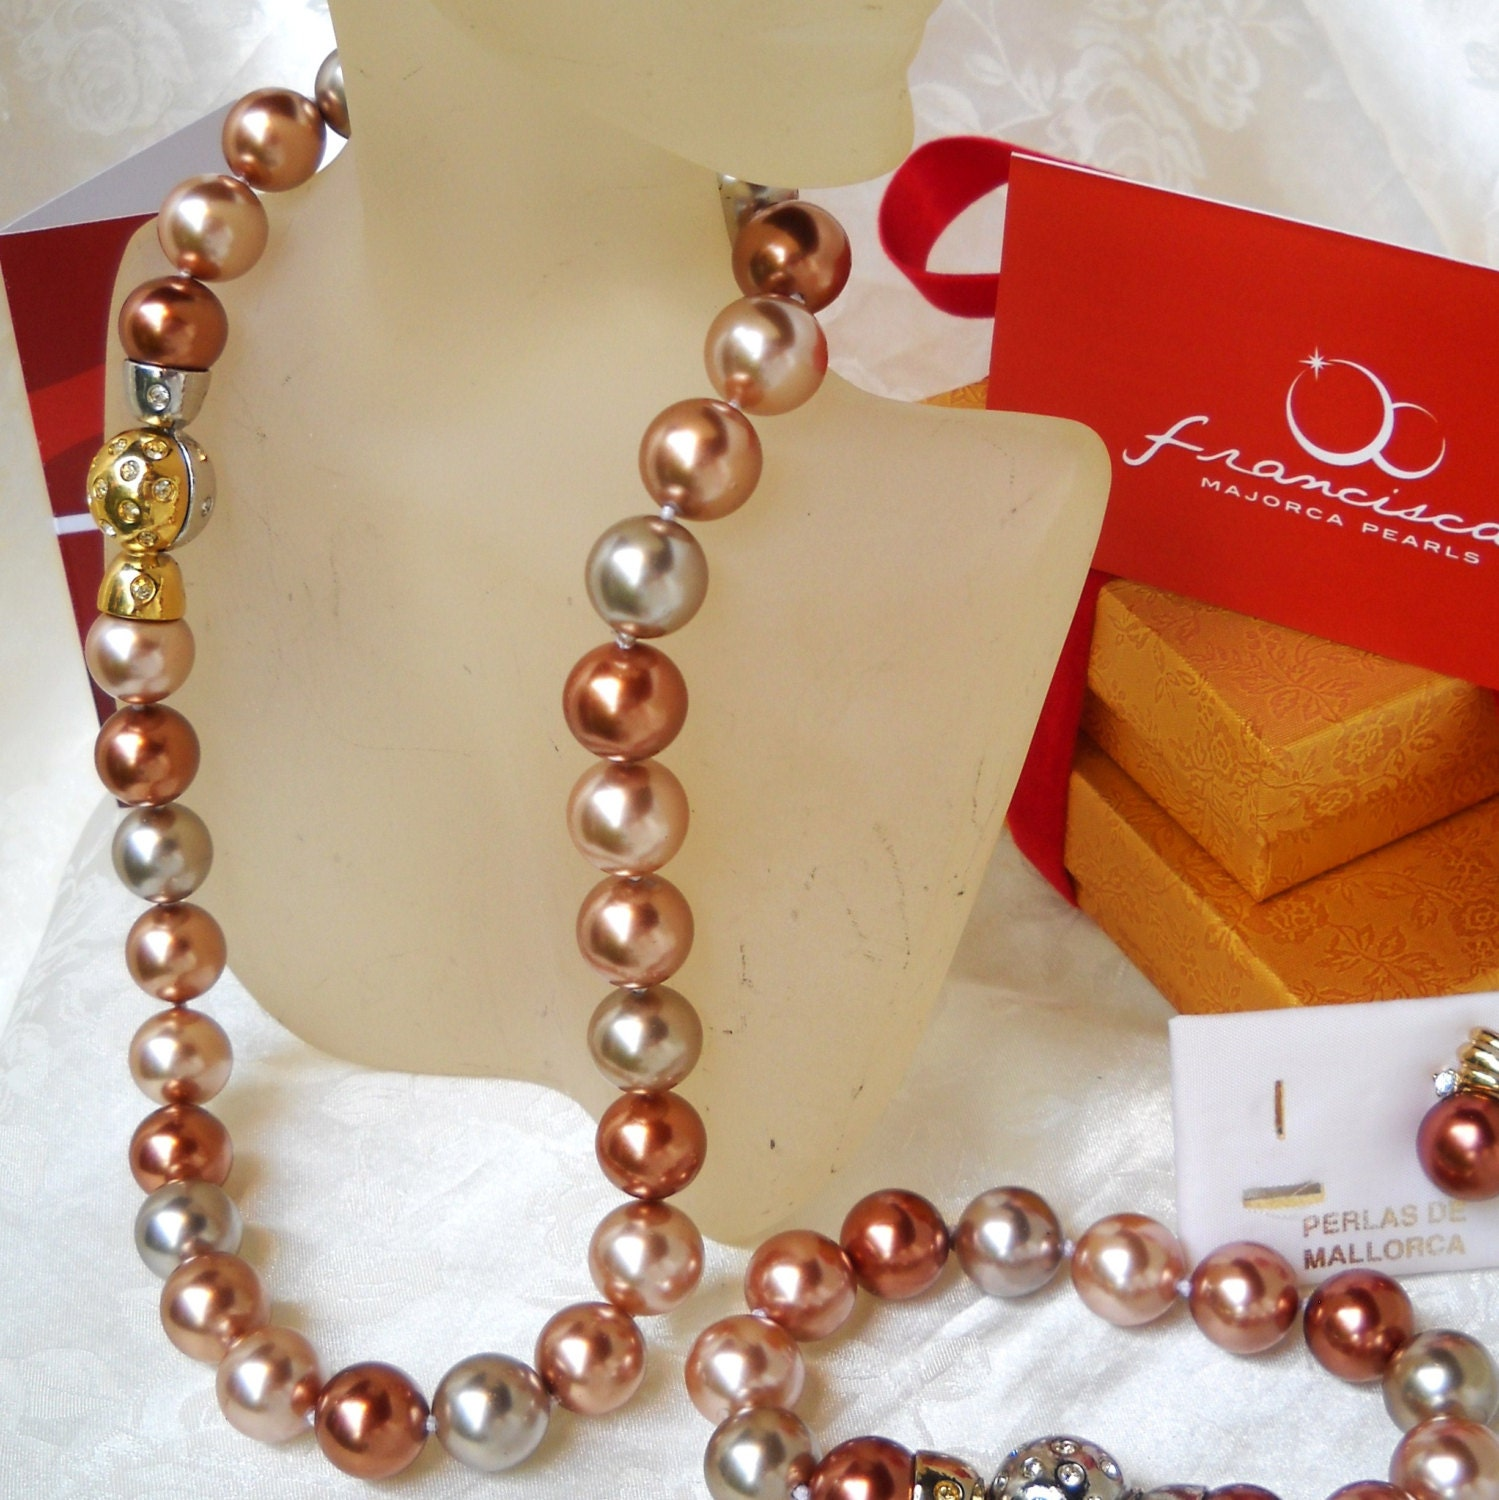 Mallorca Pearl Necklace: Majorca/Mallorca Pearl Necklace Multi-color Single Strand 15mm